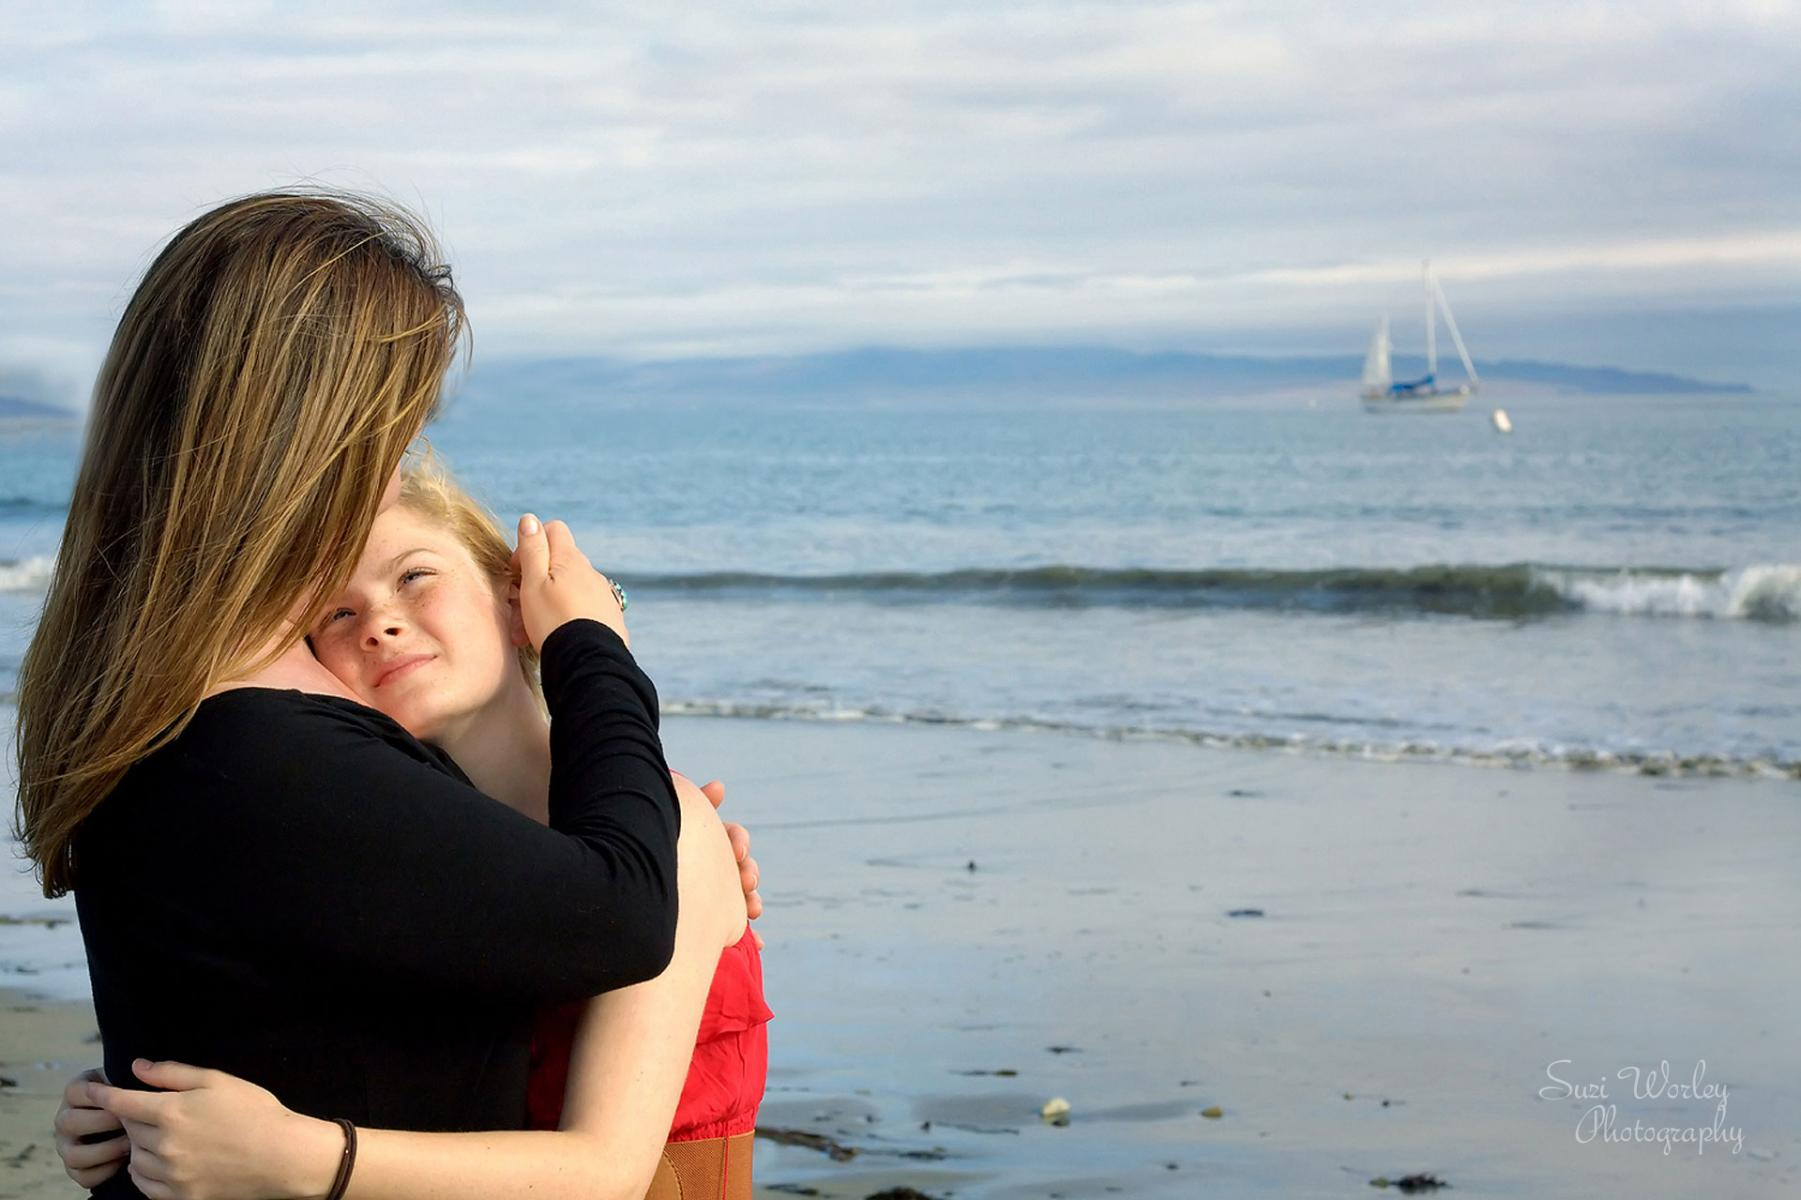 A quiet moment at the beach.  #SuziWorleyPhotography #Portraits #Mother #Daughter #Beach